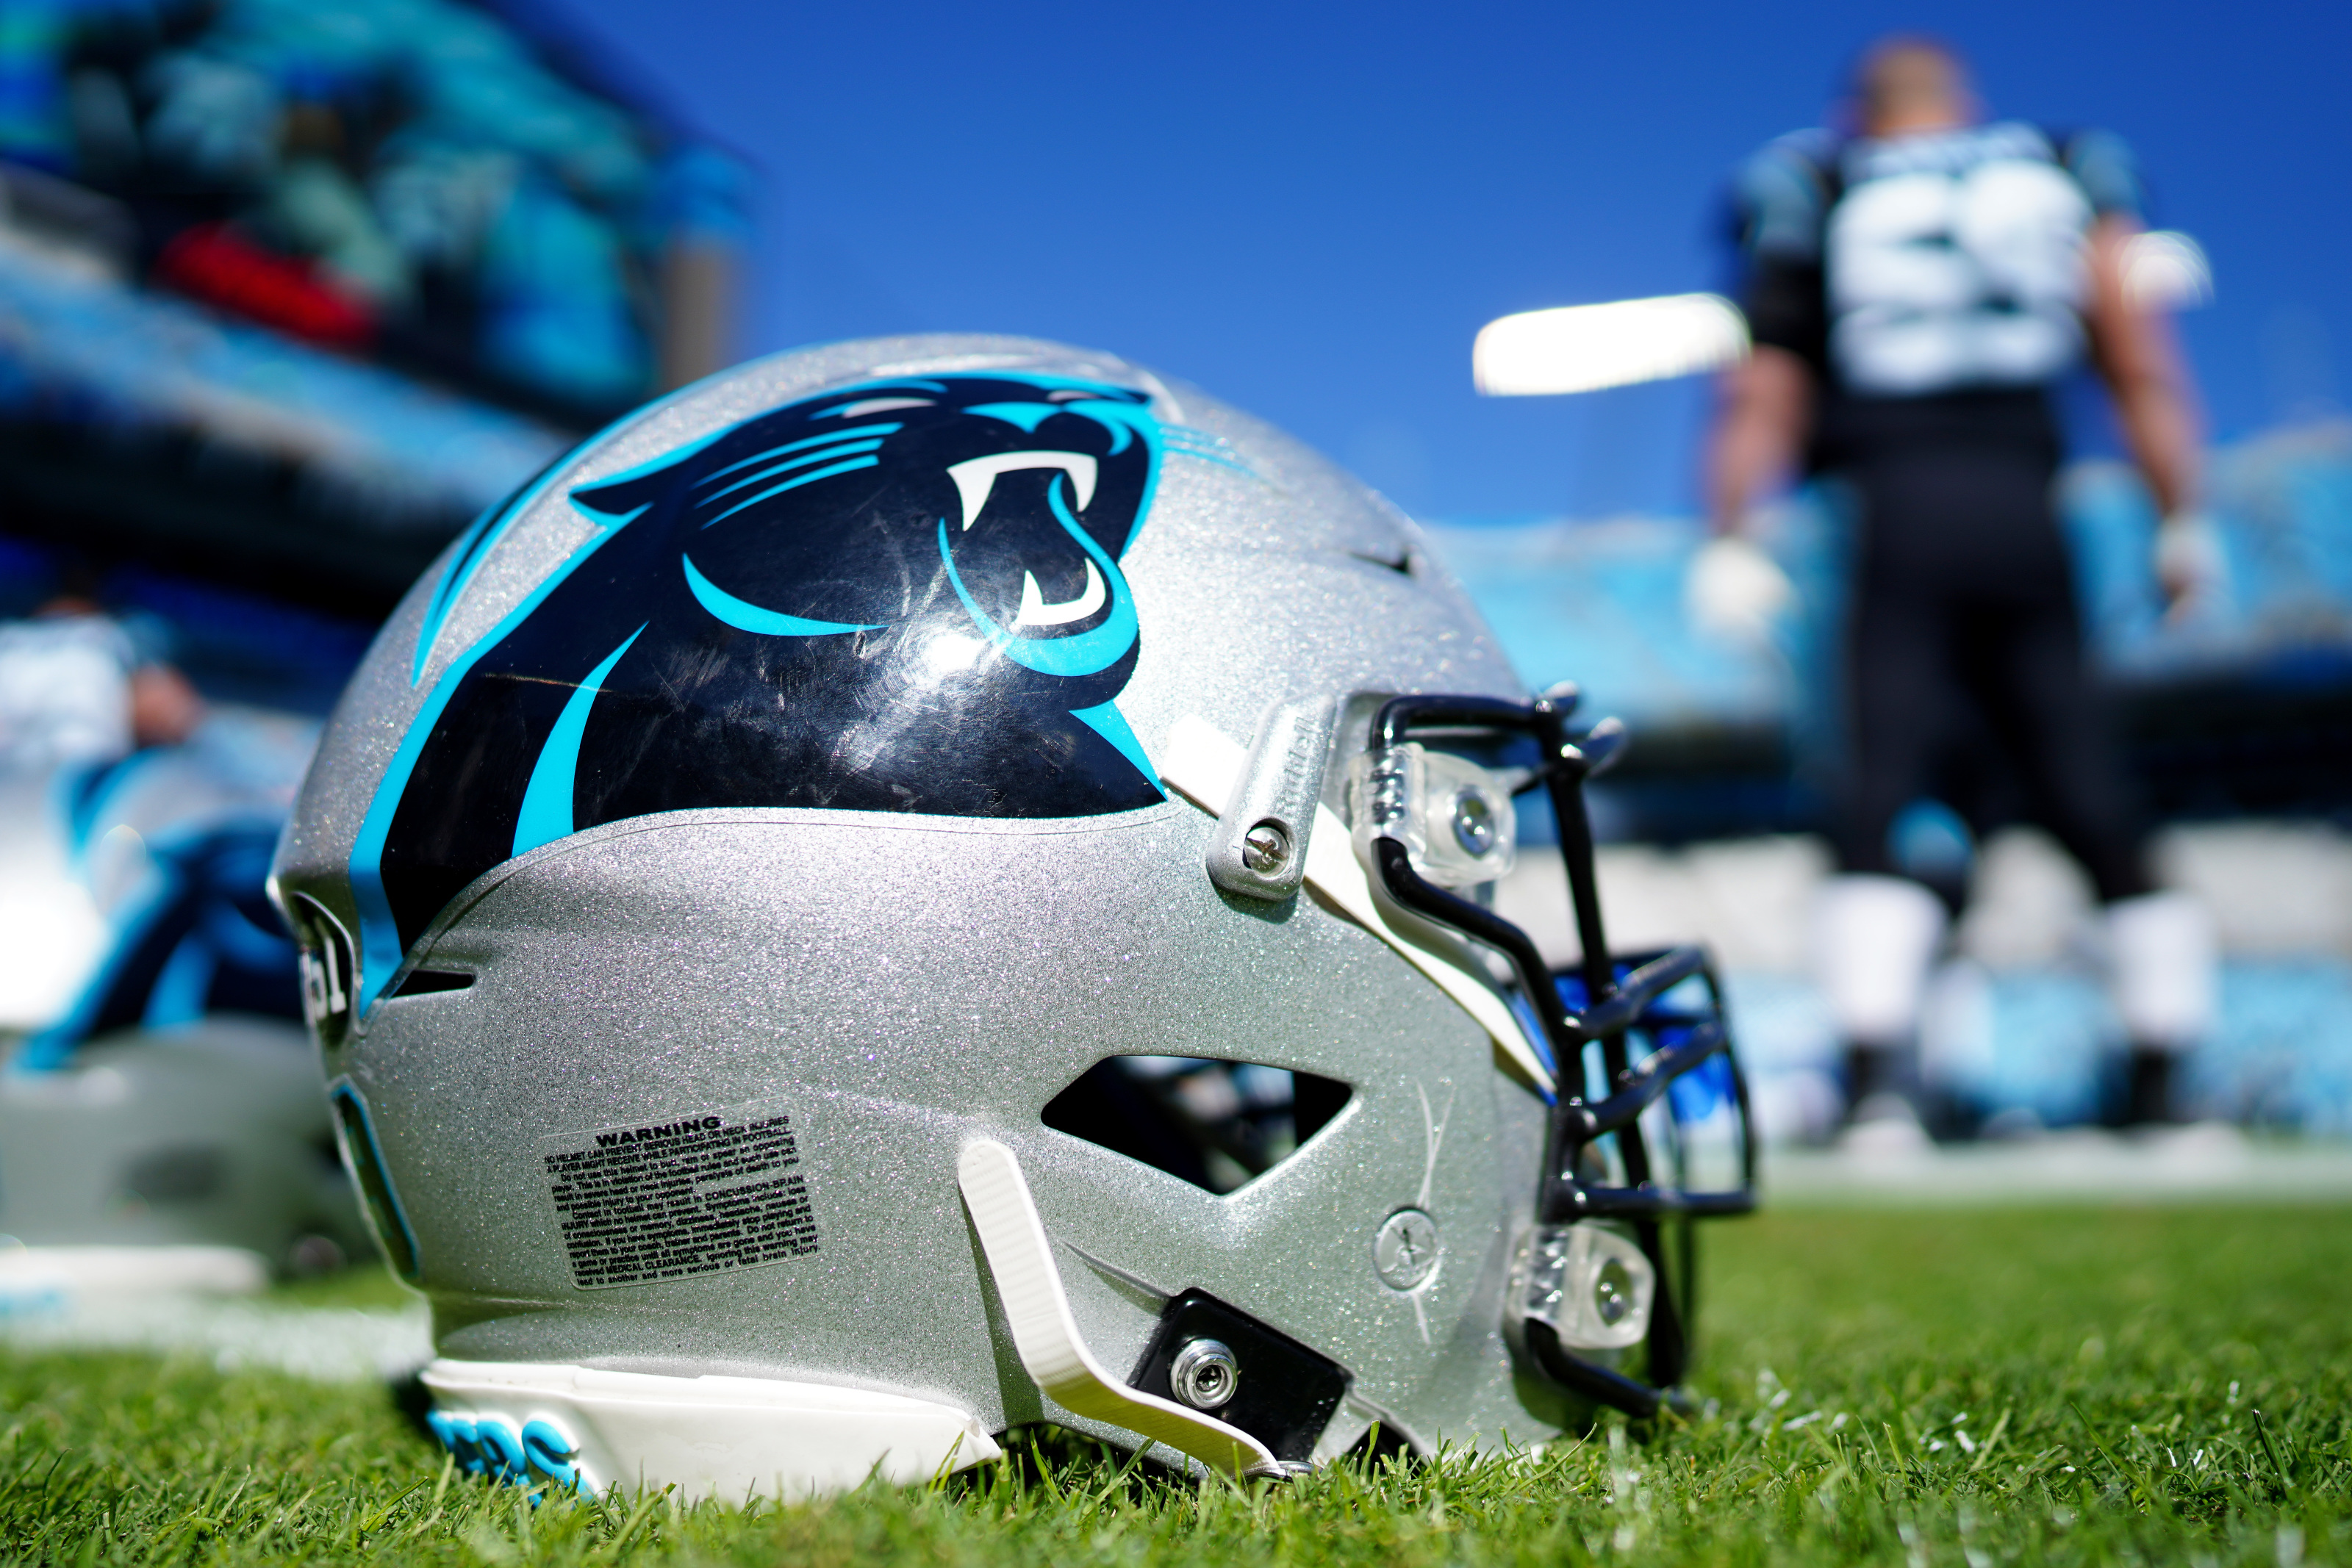 Carolina Panthers are getting a head start to rebuilding their culture